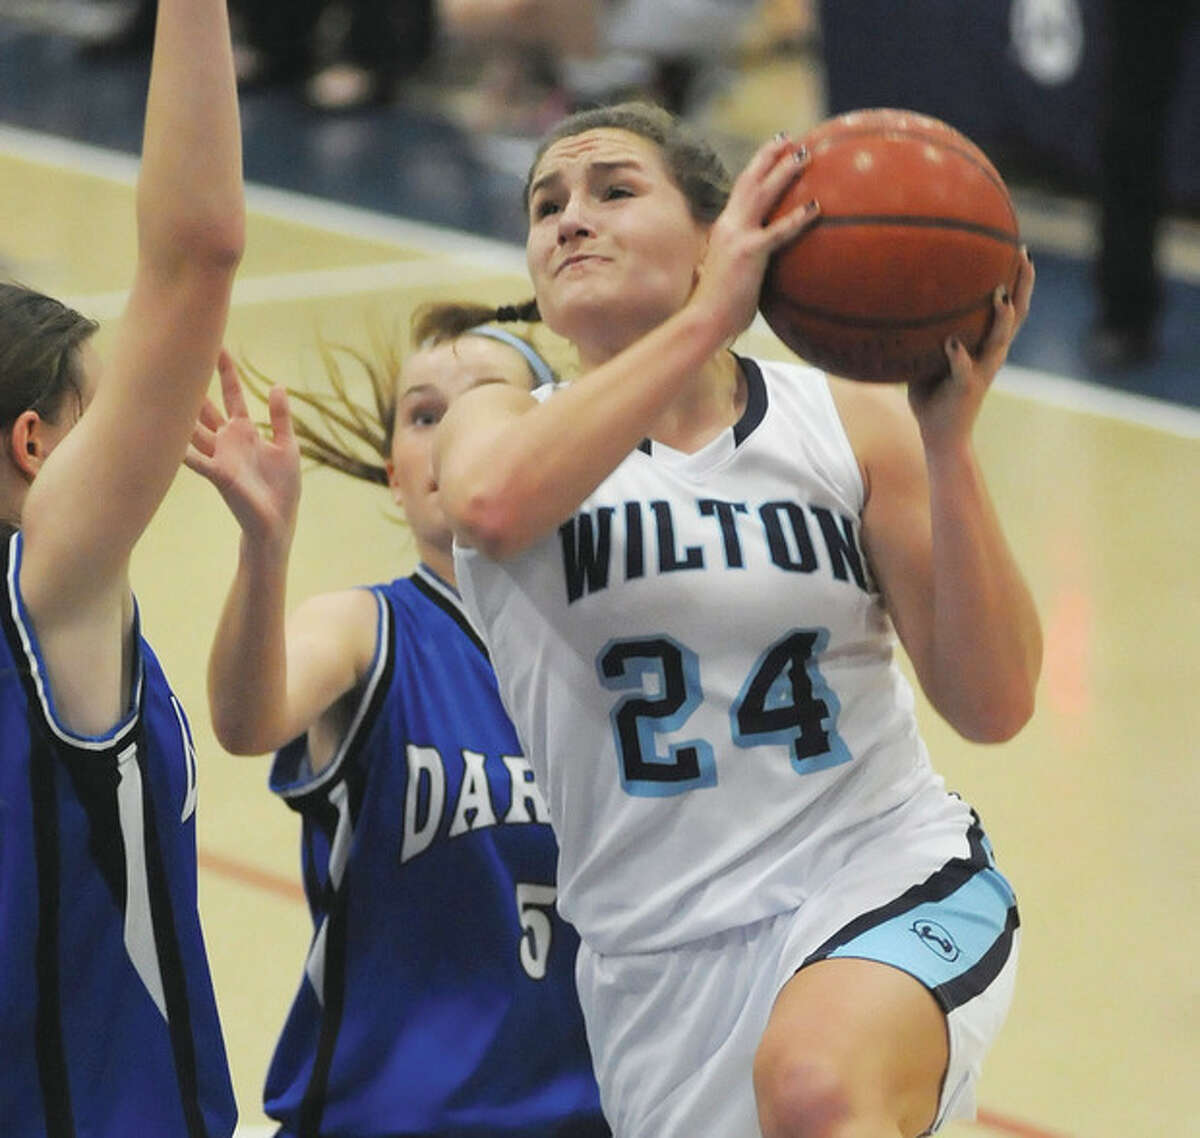 Hour photo/John Nash Wilton's Casey Pearsall, right, goes up for a shot against the defense of Darien's Kate Bushell, right, and Emily Stein, rear, during Wednesday's season-opening game in Wilton.